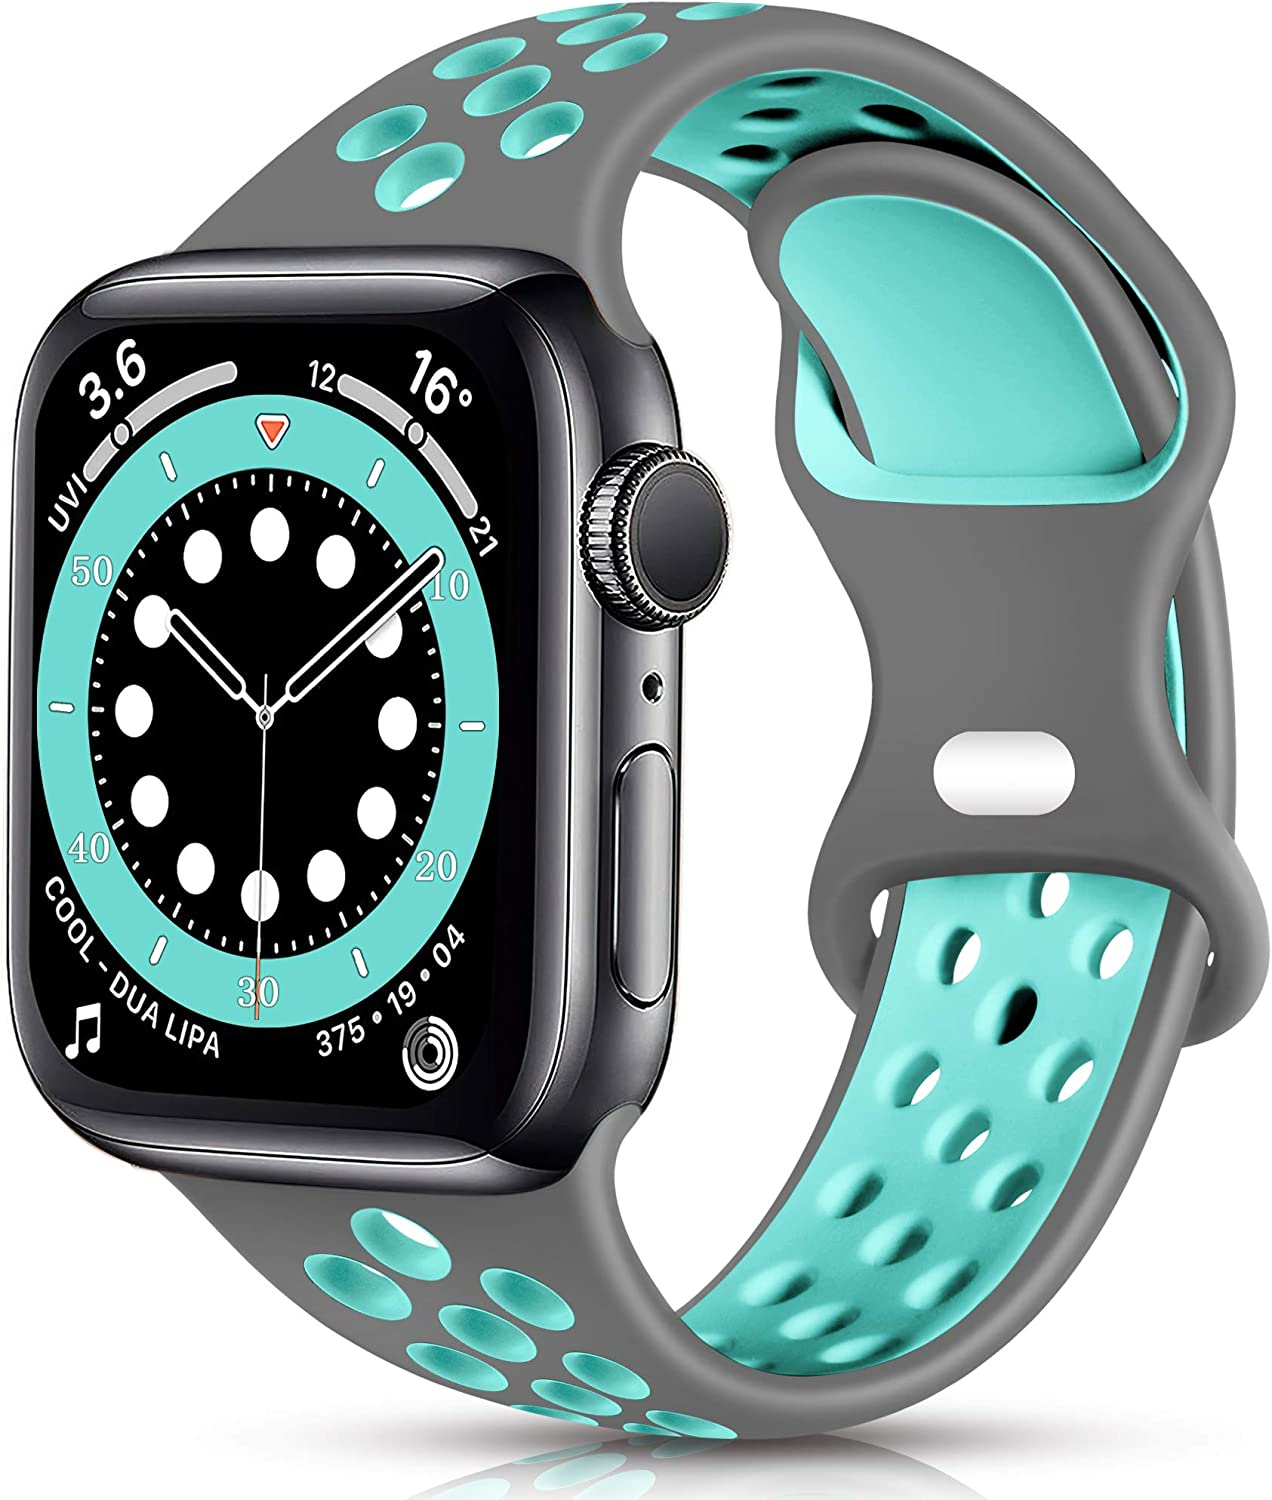 Sport Band Compatible with Apple Watch 38mm 40mm Women Men, Breathable Silicone Replacement Wristband for iWatch SE Series 1/2/3/4/5/6, Black/Colorful, Small